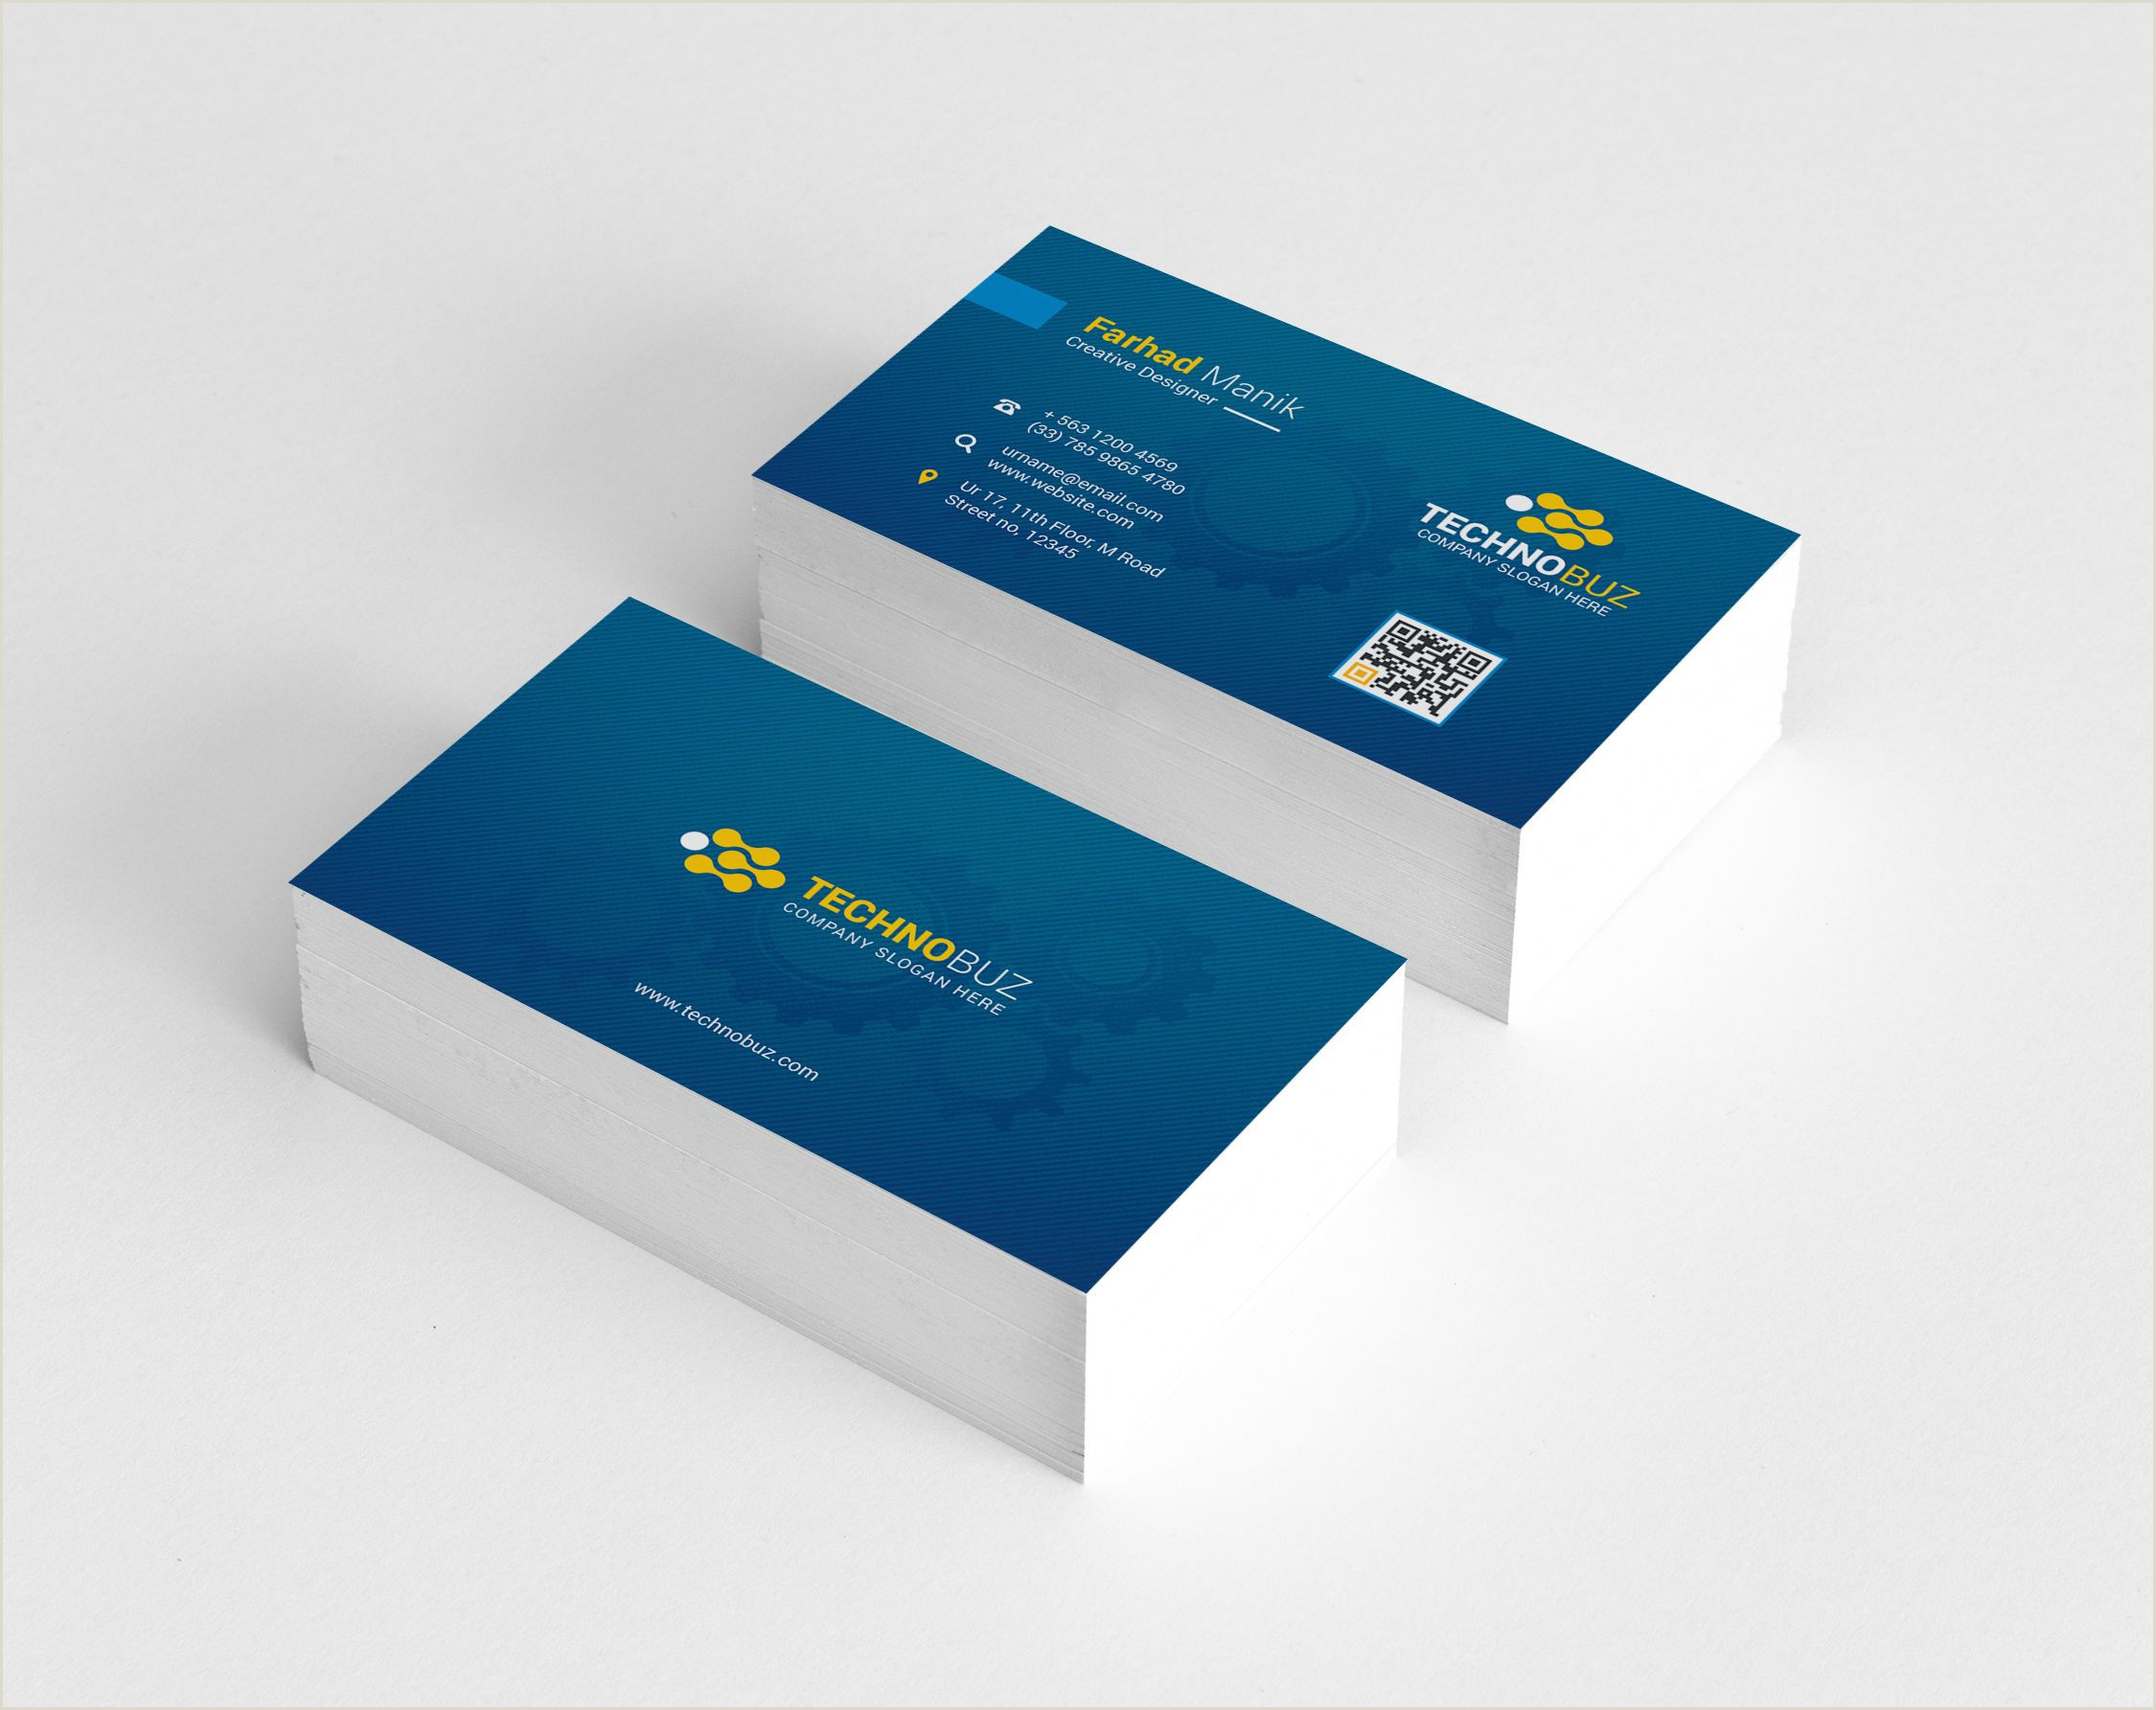 Information Business Cards Kentucky Elegant Corporate Business Card Template Graphic